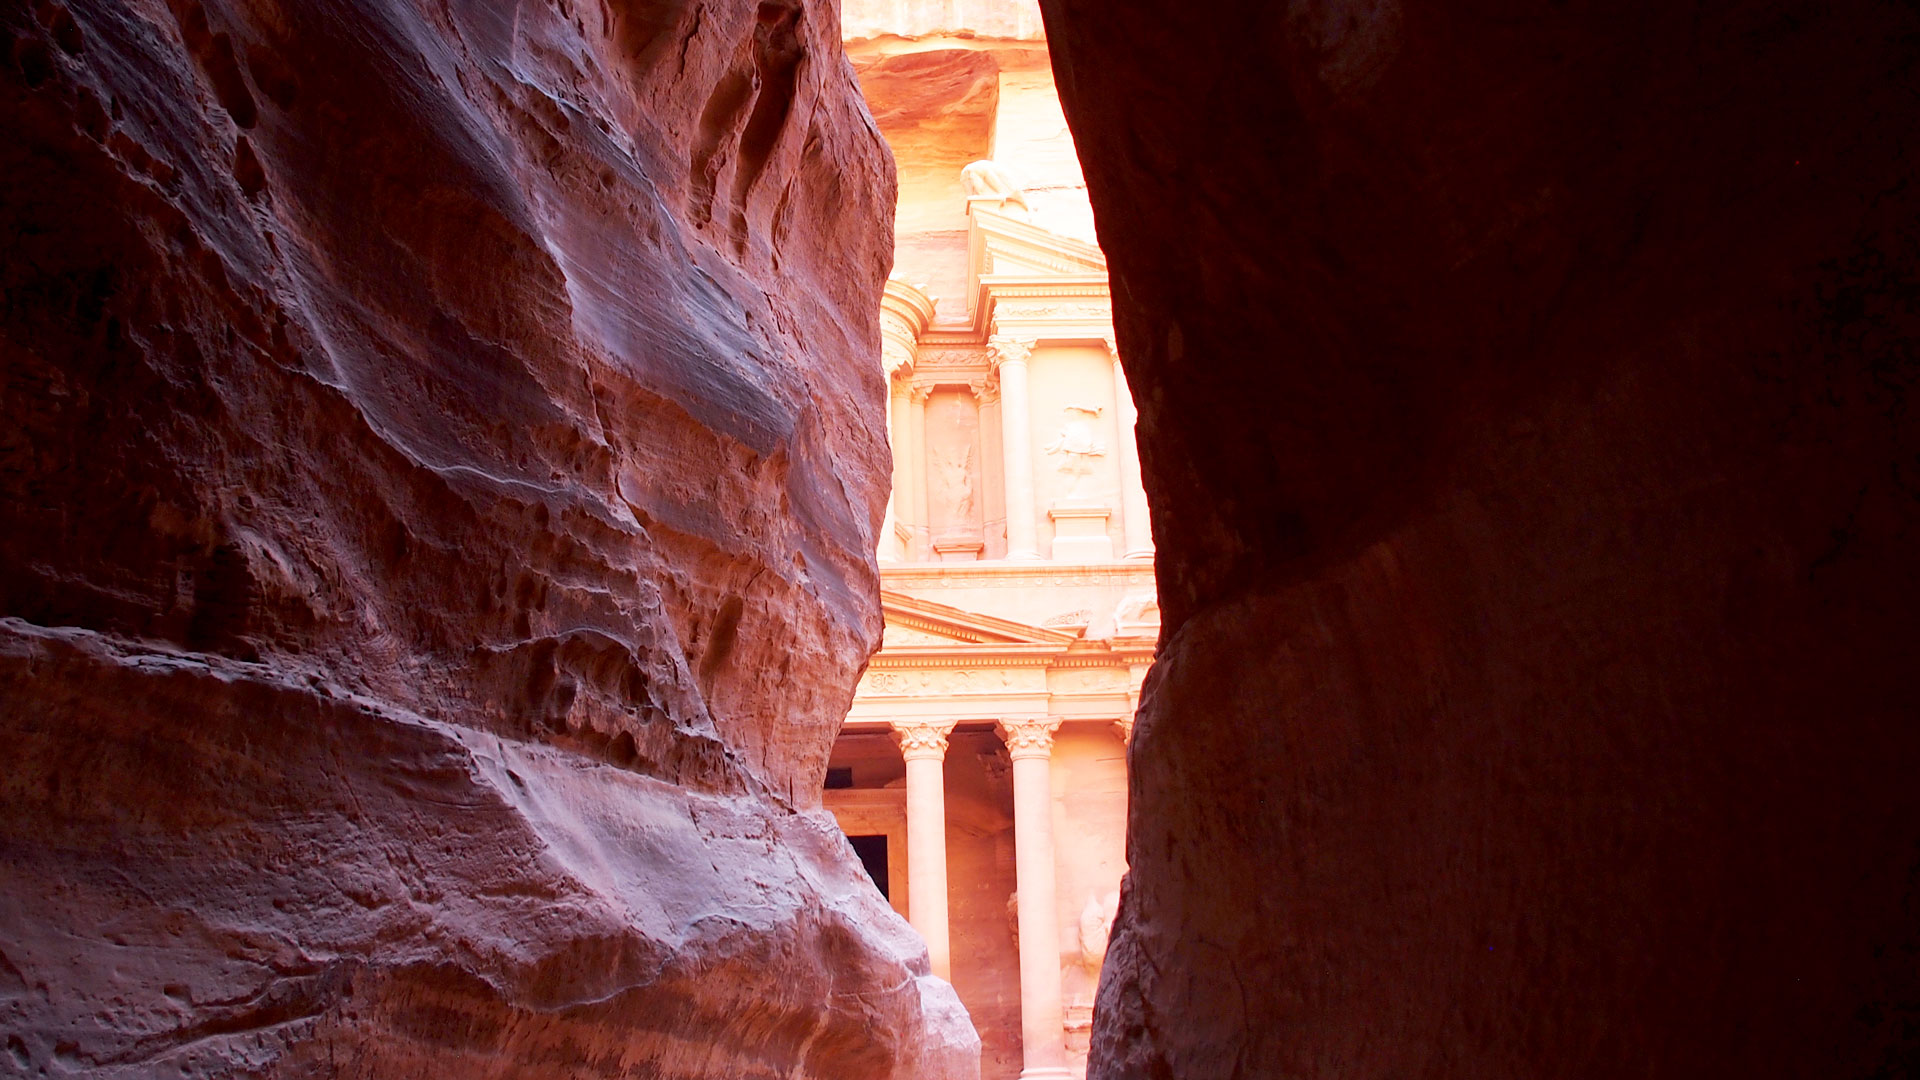 Petra – A Wonder Of The World